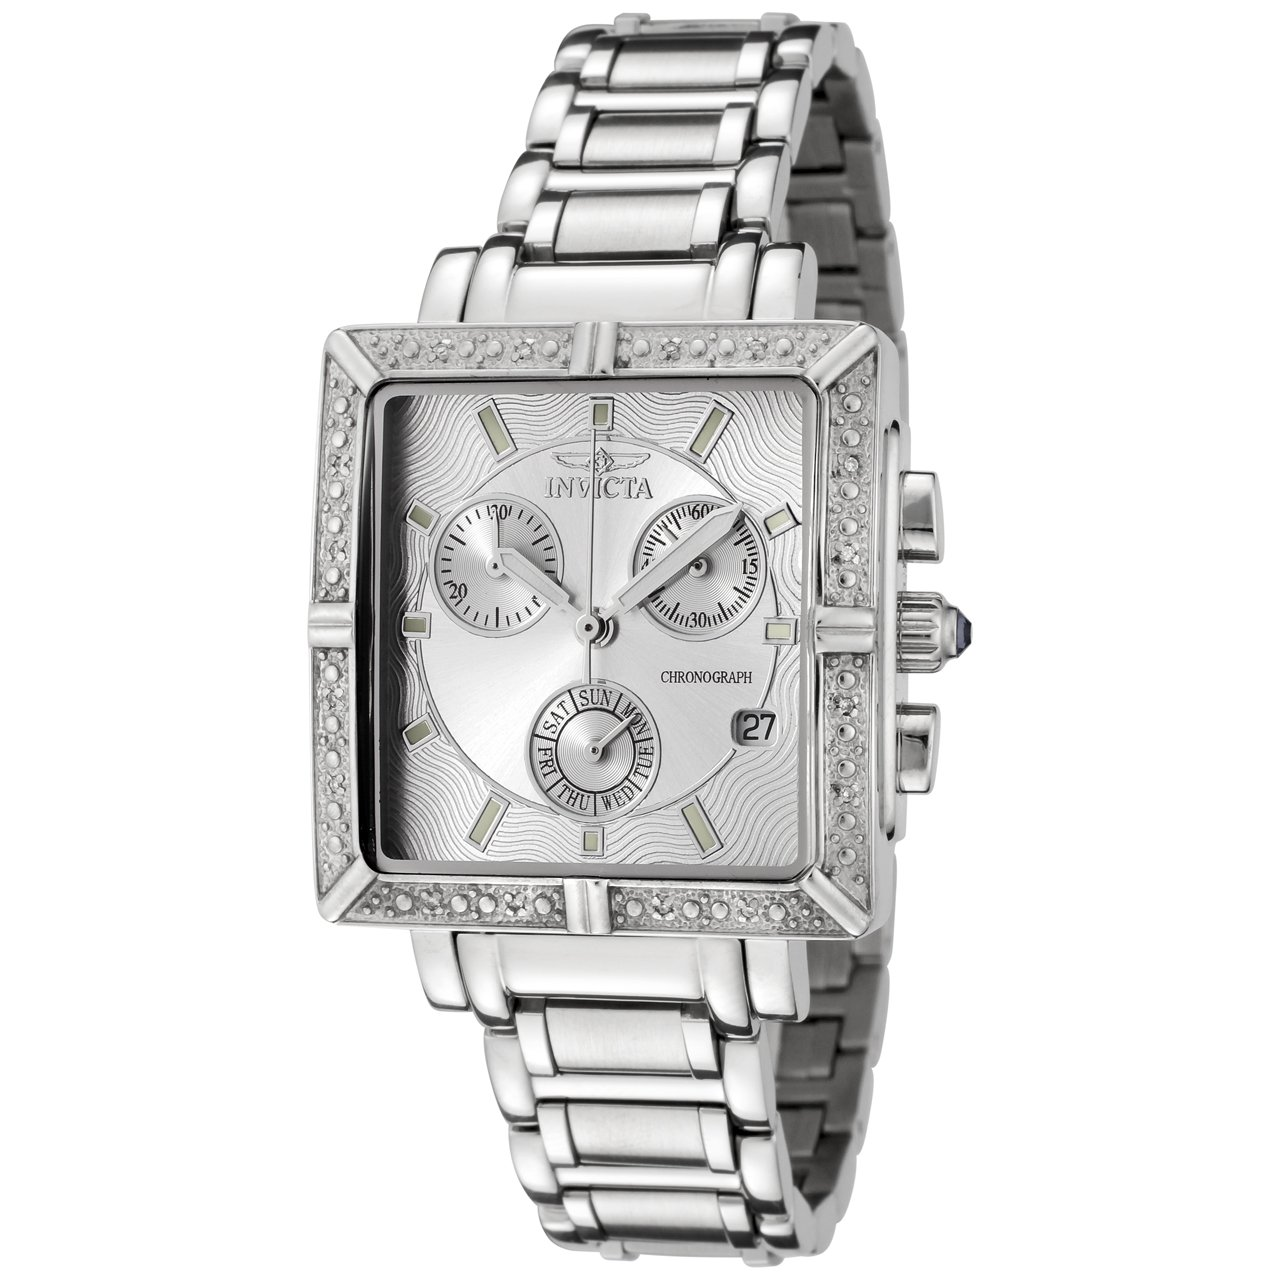 Women 39 s watches r8700 invicta women 39 s 5377 square angel diamond stainless steel chronograph for Woman diamond watches